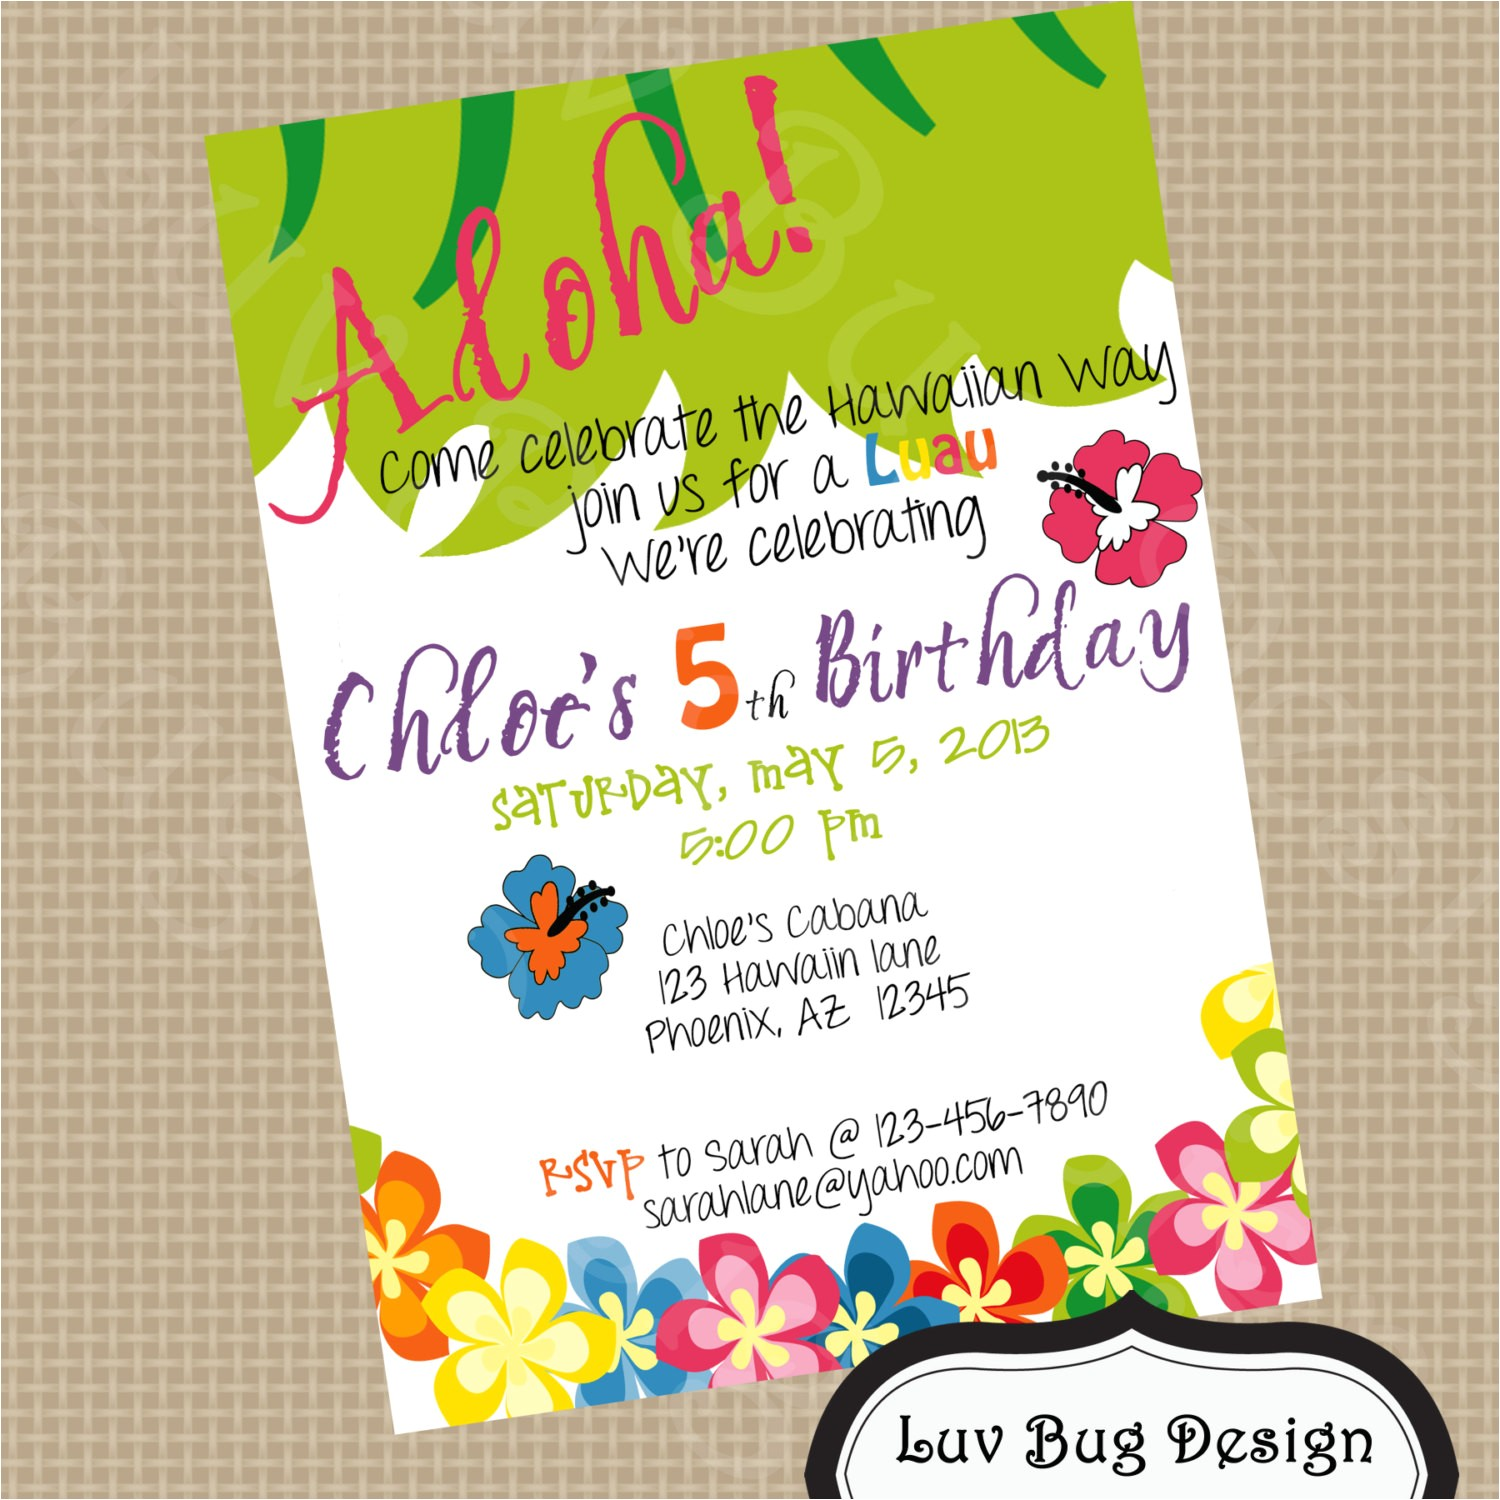 Drop Off Party Invitation Wording 5th Birthday Party Invitation Wording Cimvitation